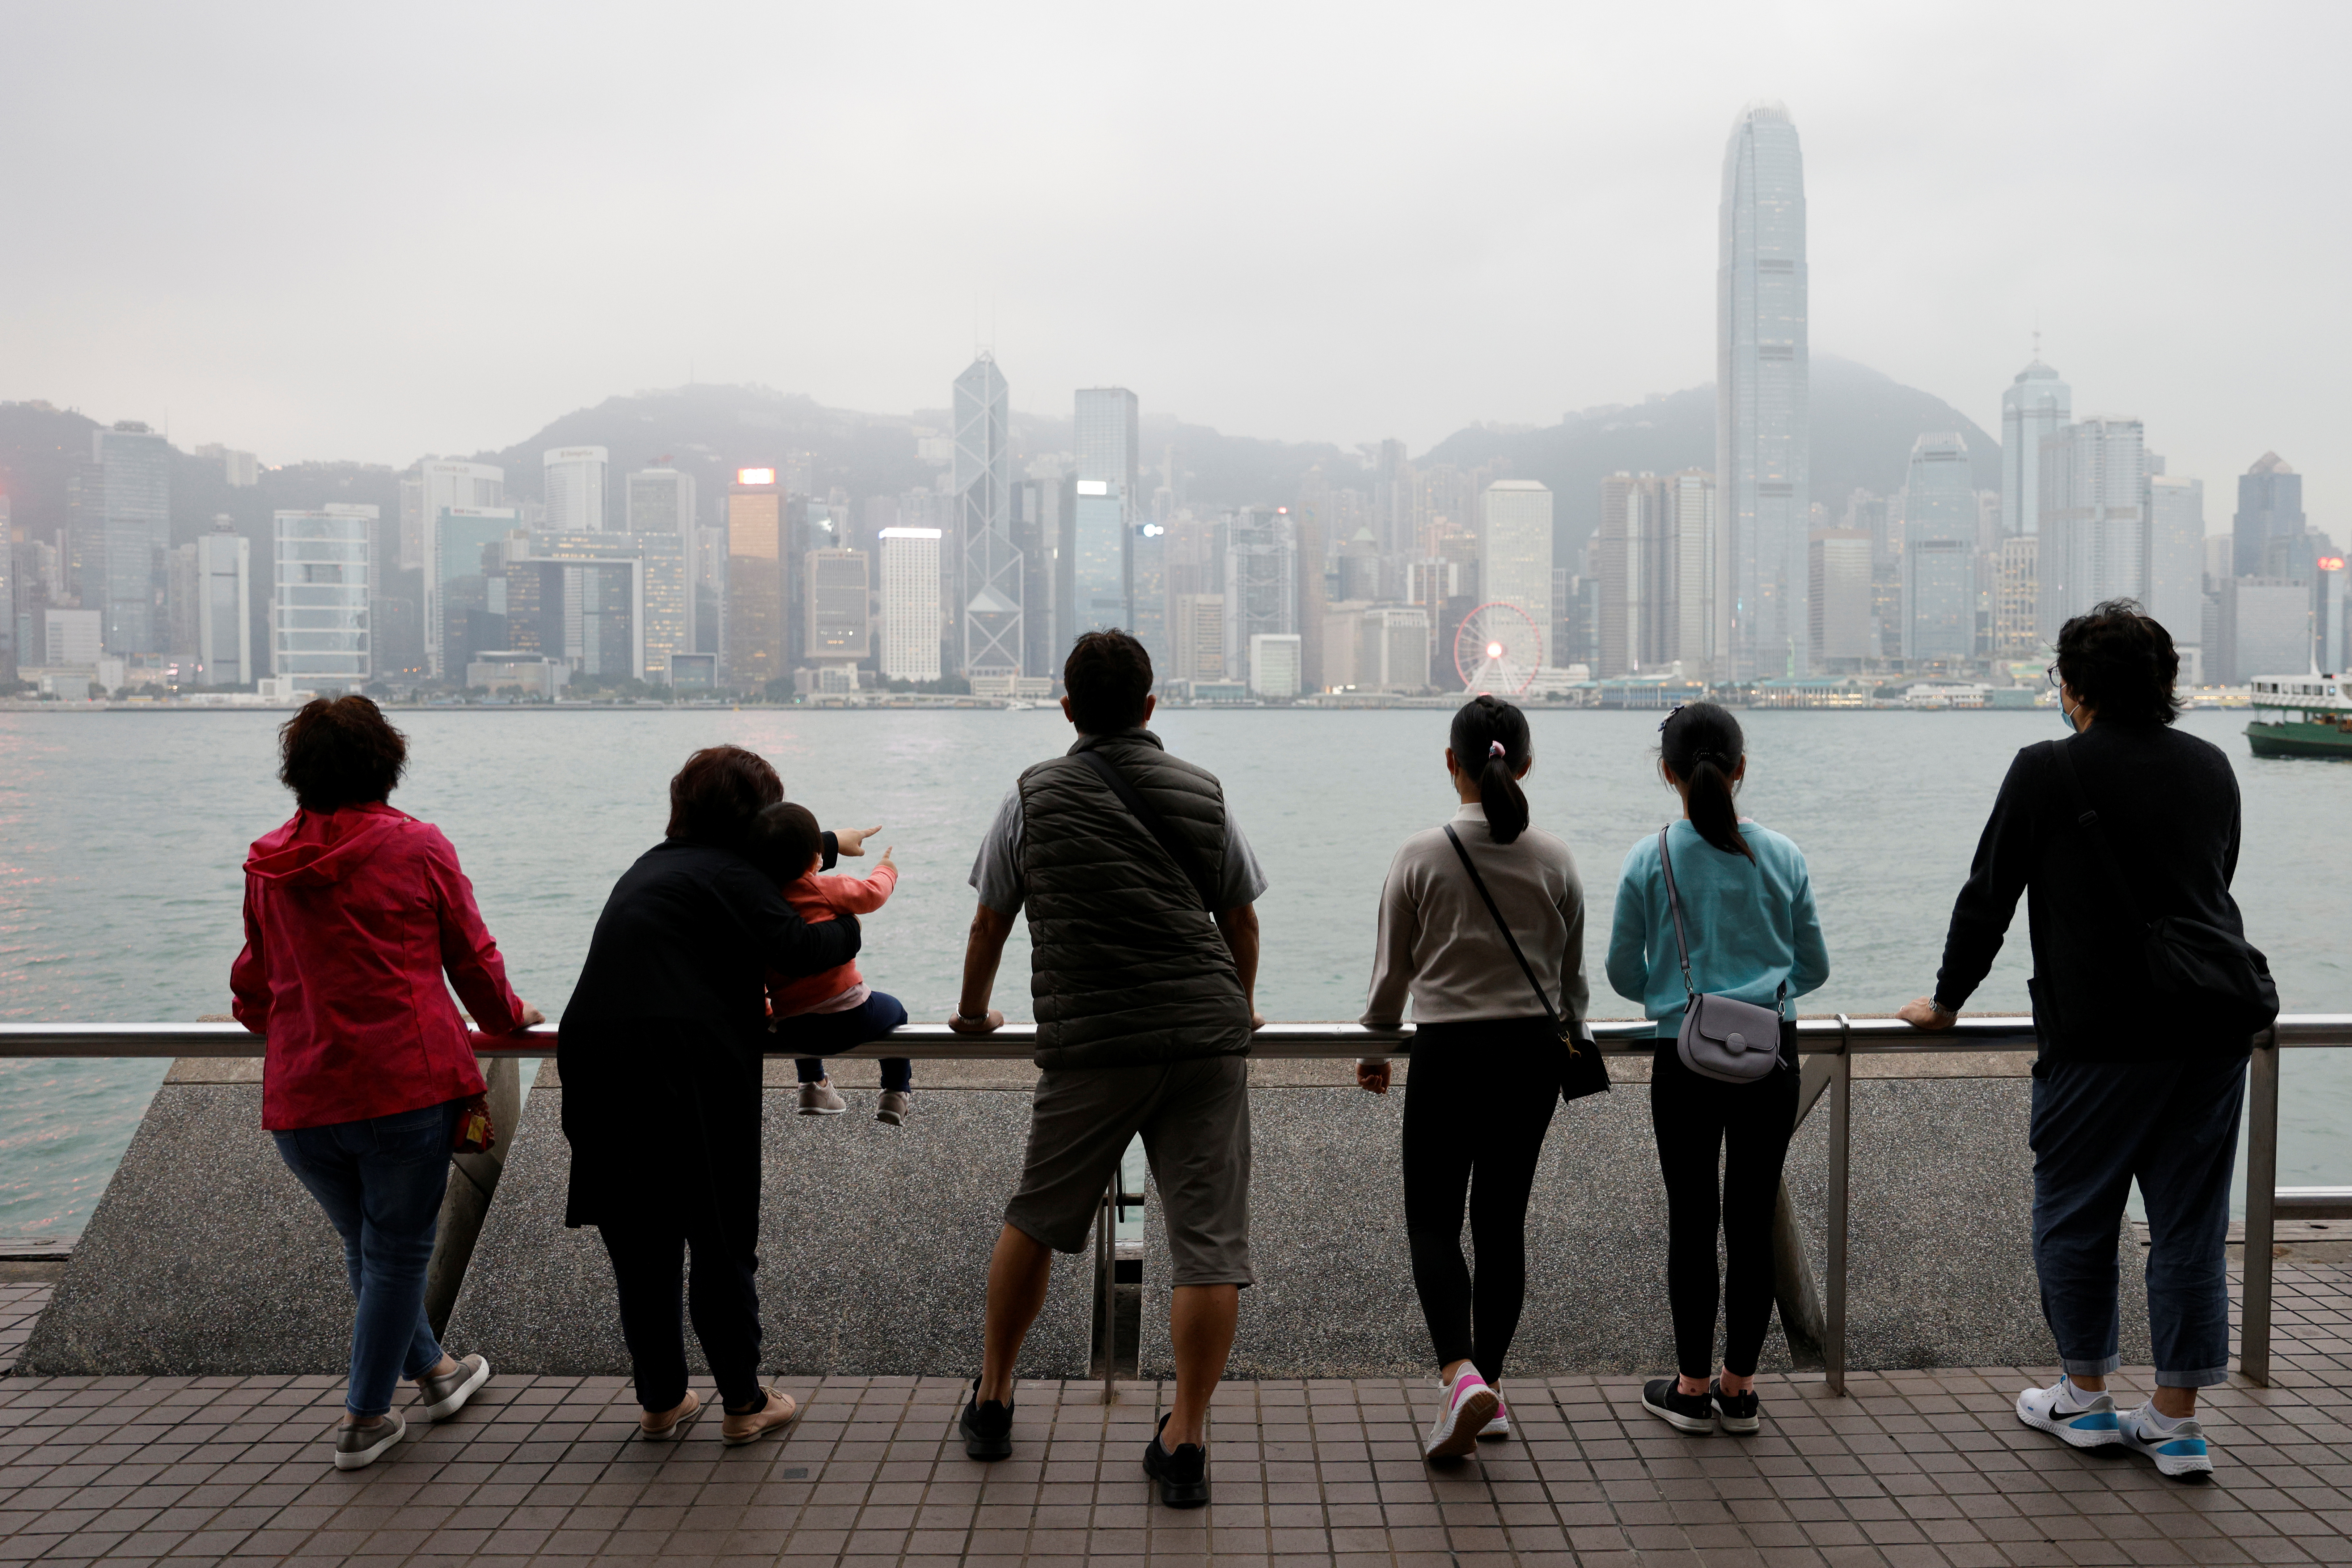 The Lai family, who are emigrating to Scotland, look out over the city's skyline on an outing to Tsim Sha Tsui in Hong Kong, China, December 14, 2020. REUTERS/Tyrone Siu